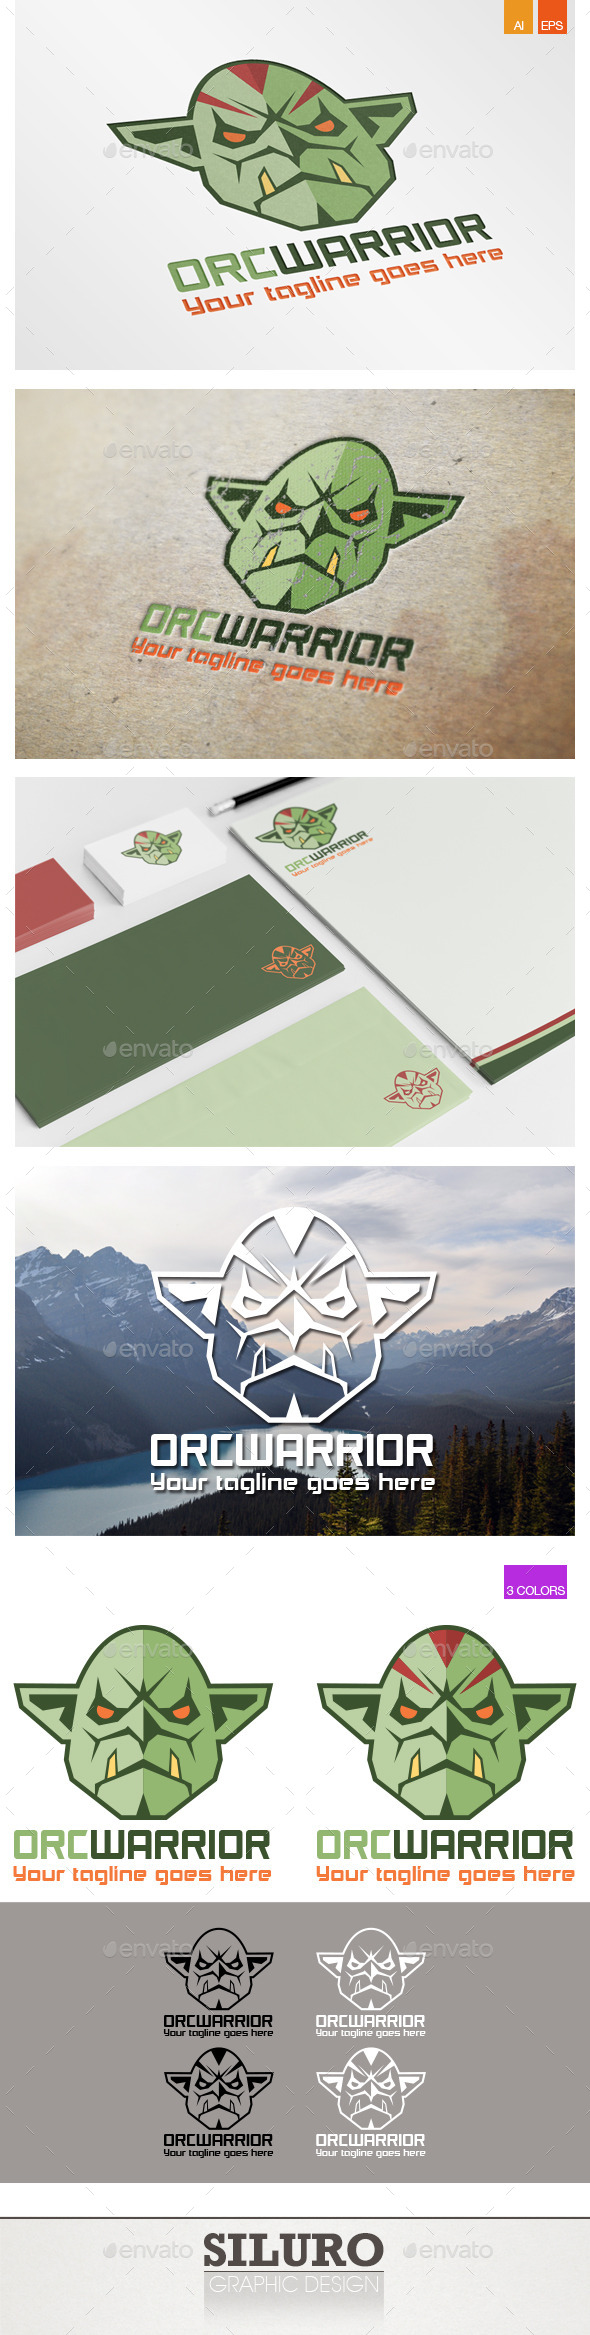 GraphicRiver Orc Warrior Logo 9540433